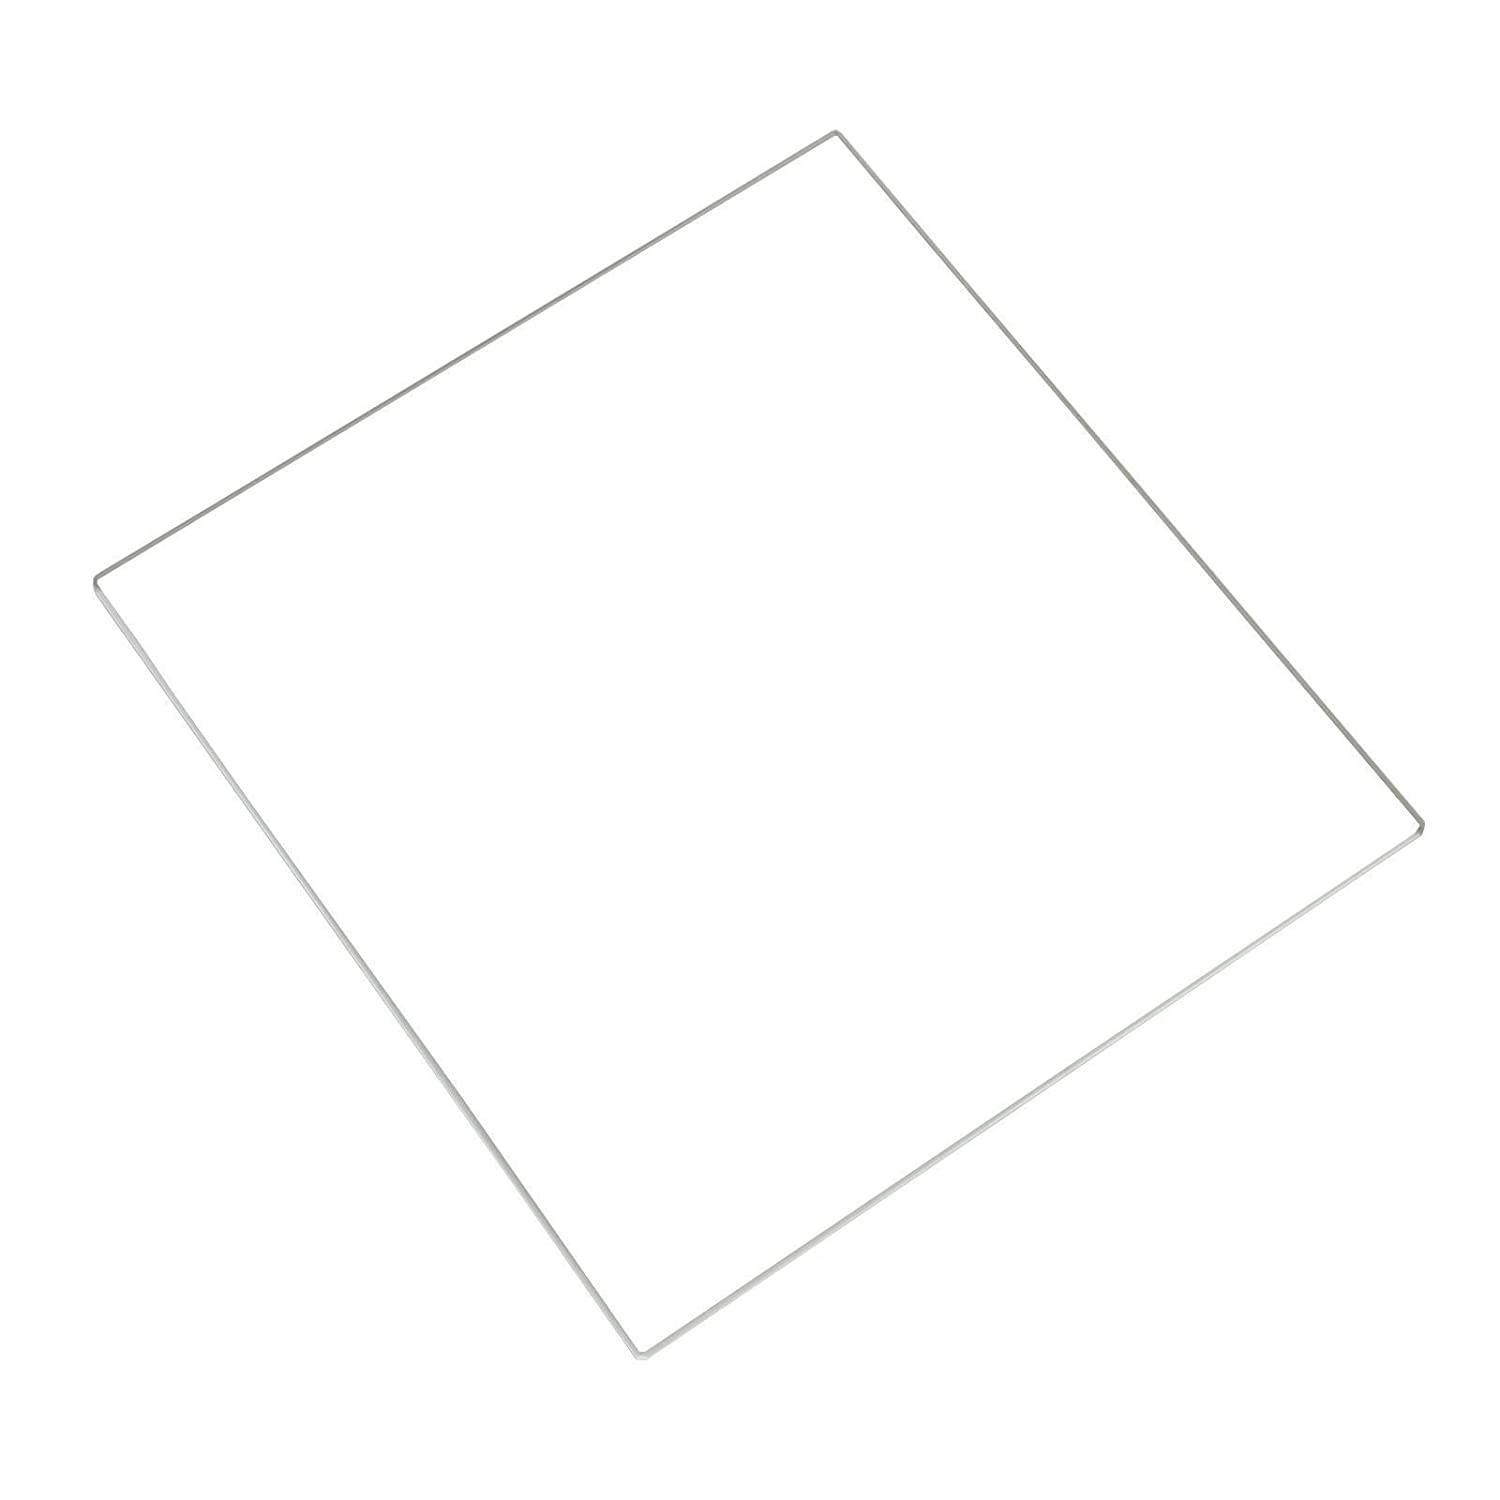 3D Printer Borosilicate Glass Build Plate for Heated Bed RepRap/CTC / ANET (220x200x3mm) BALITENSEN borosilicate glass 3d printer